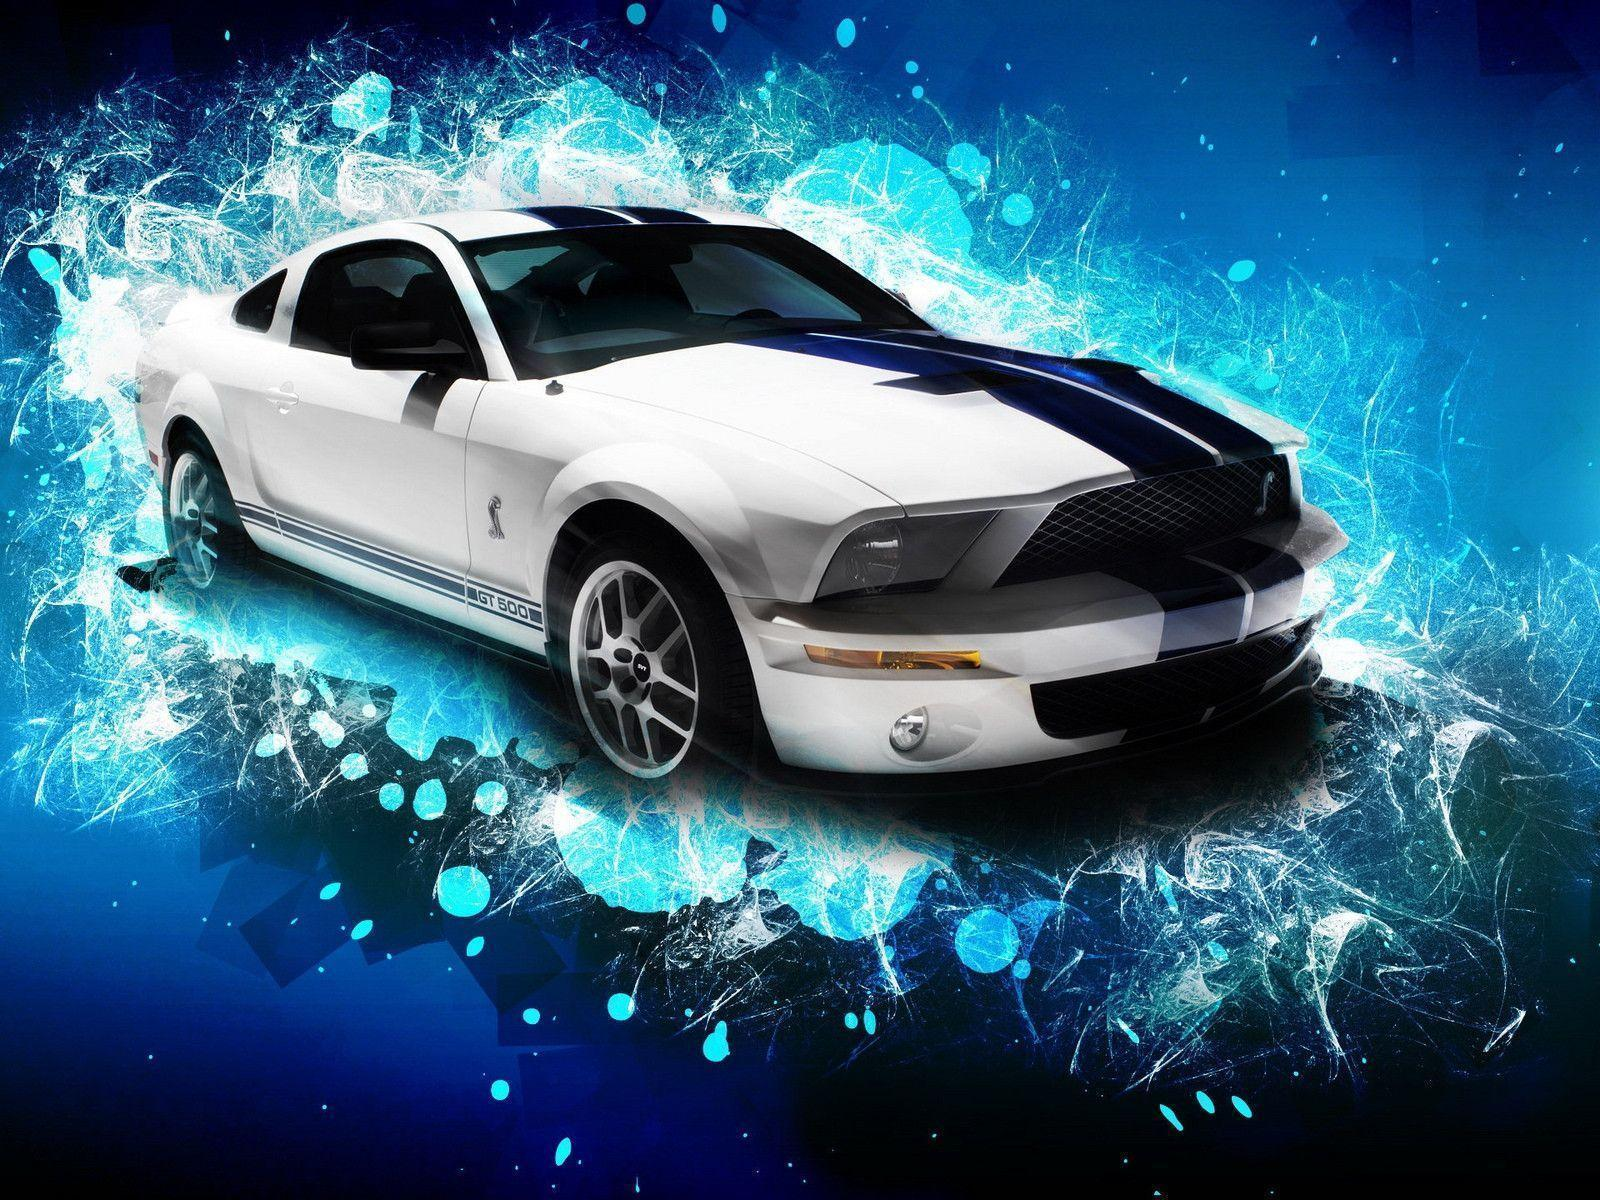 Cool Cars Wallpapers 3D Hd Background 8 HD Wallpapers | lzamgs.